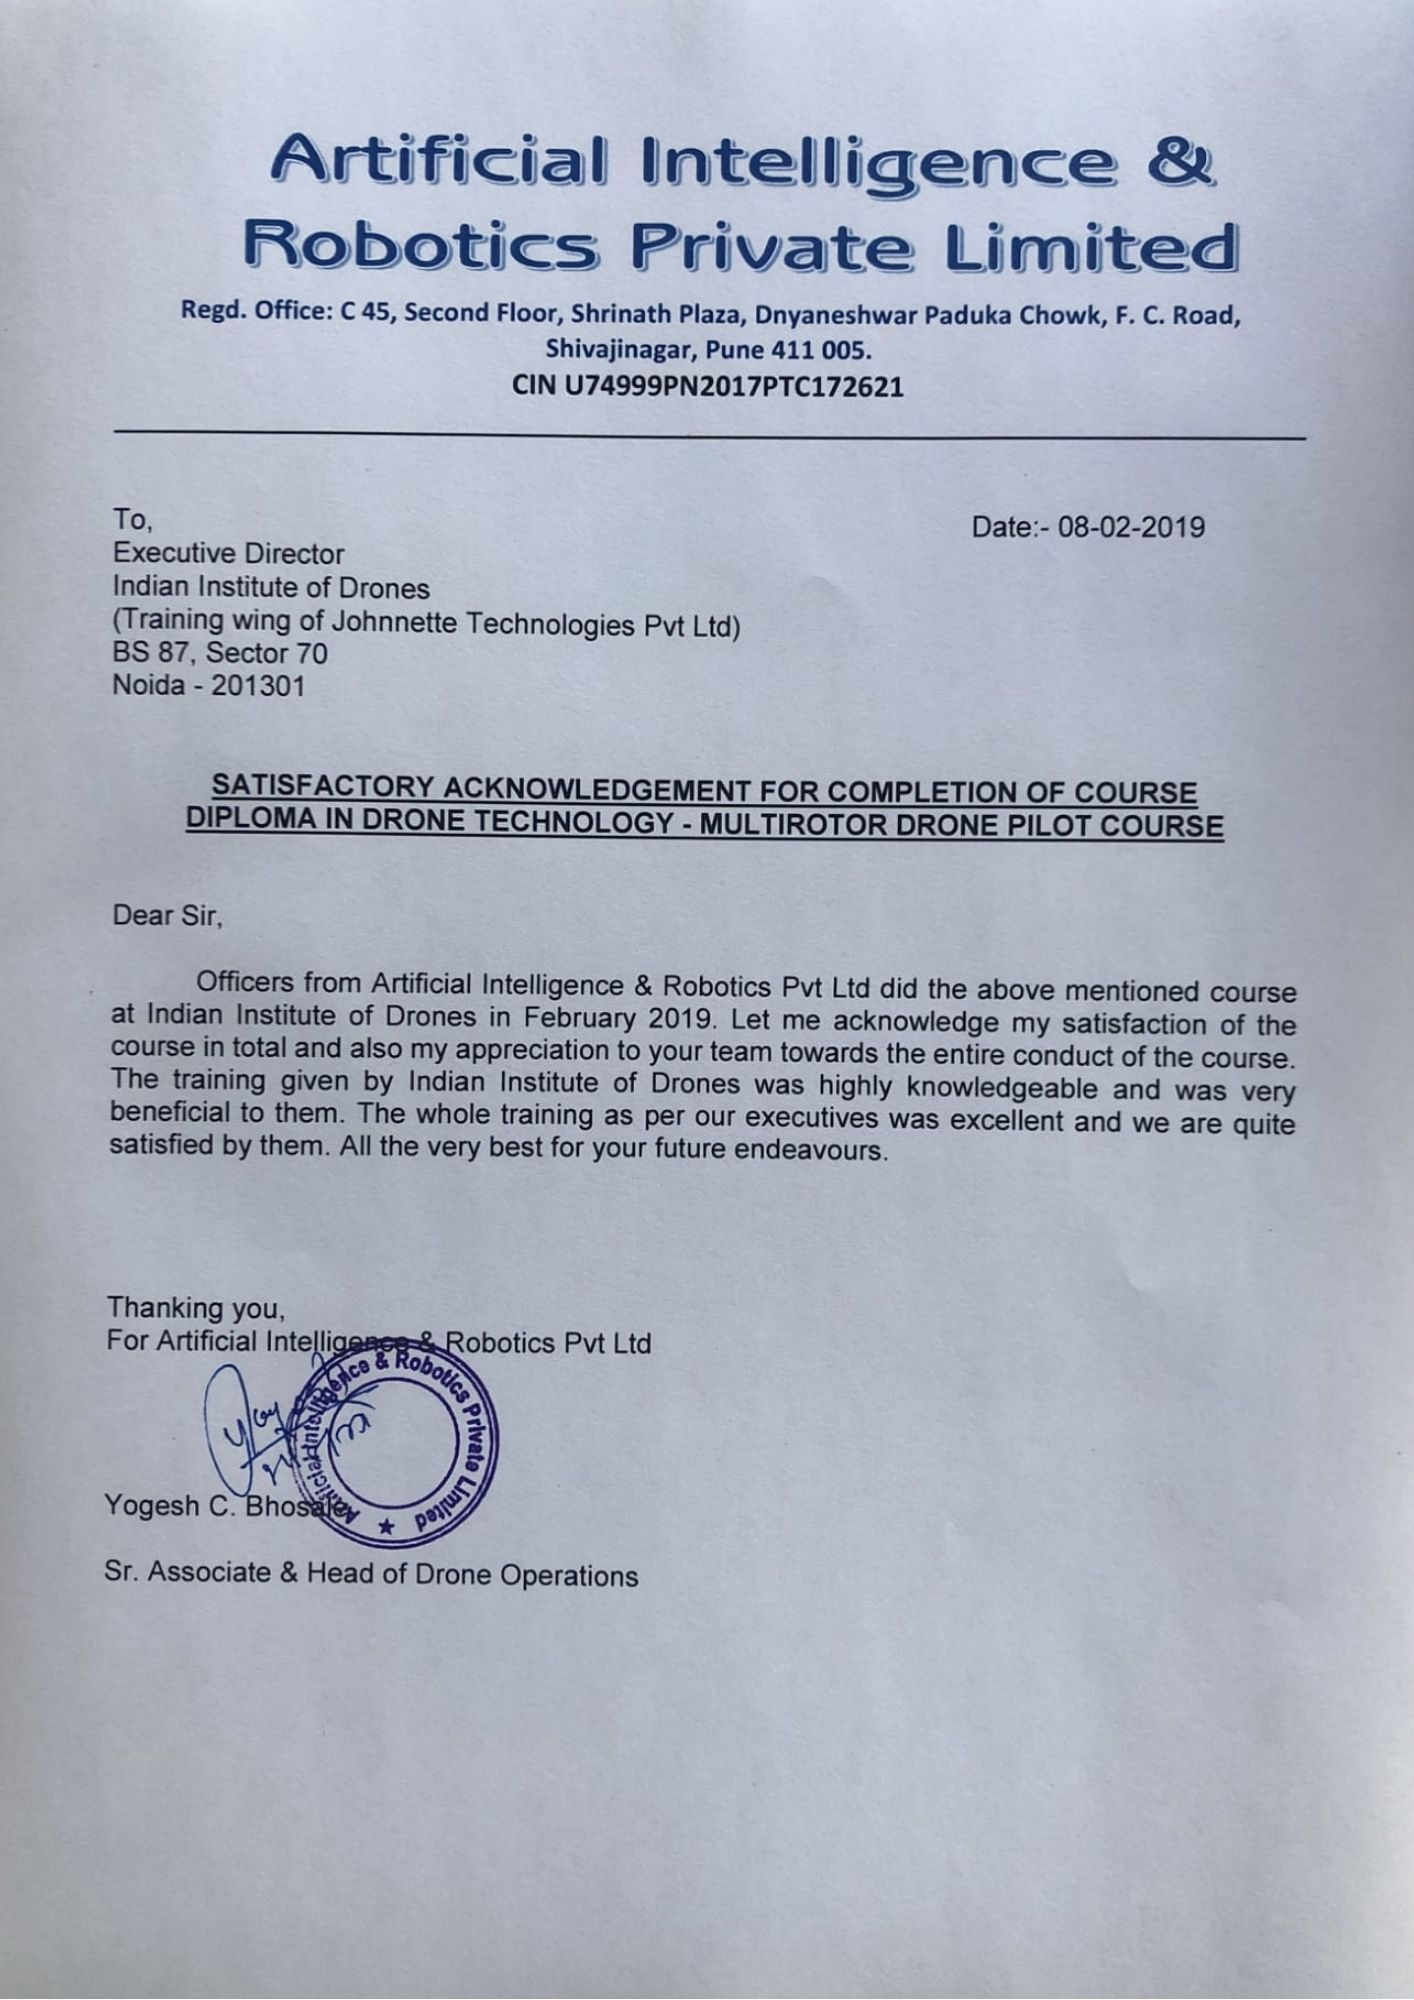 Satisfactory Letter for Drone Training Received from Artifical Intelligence and Robotics Pvt Ltd